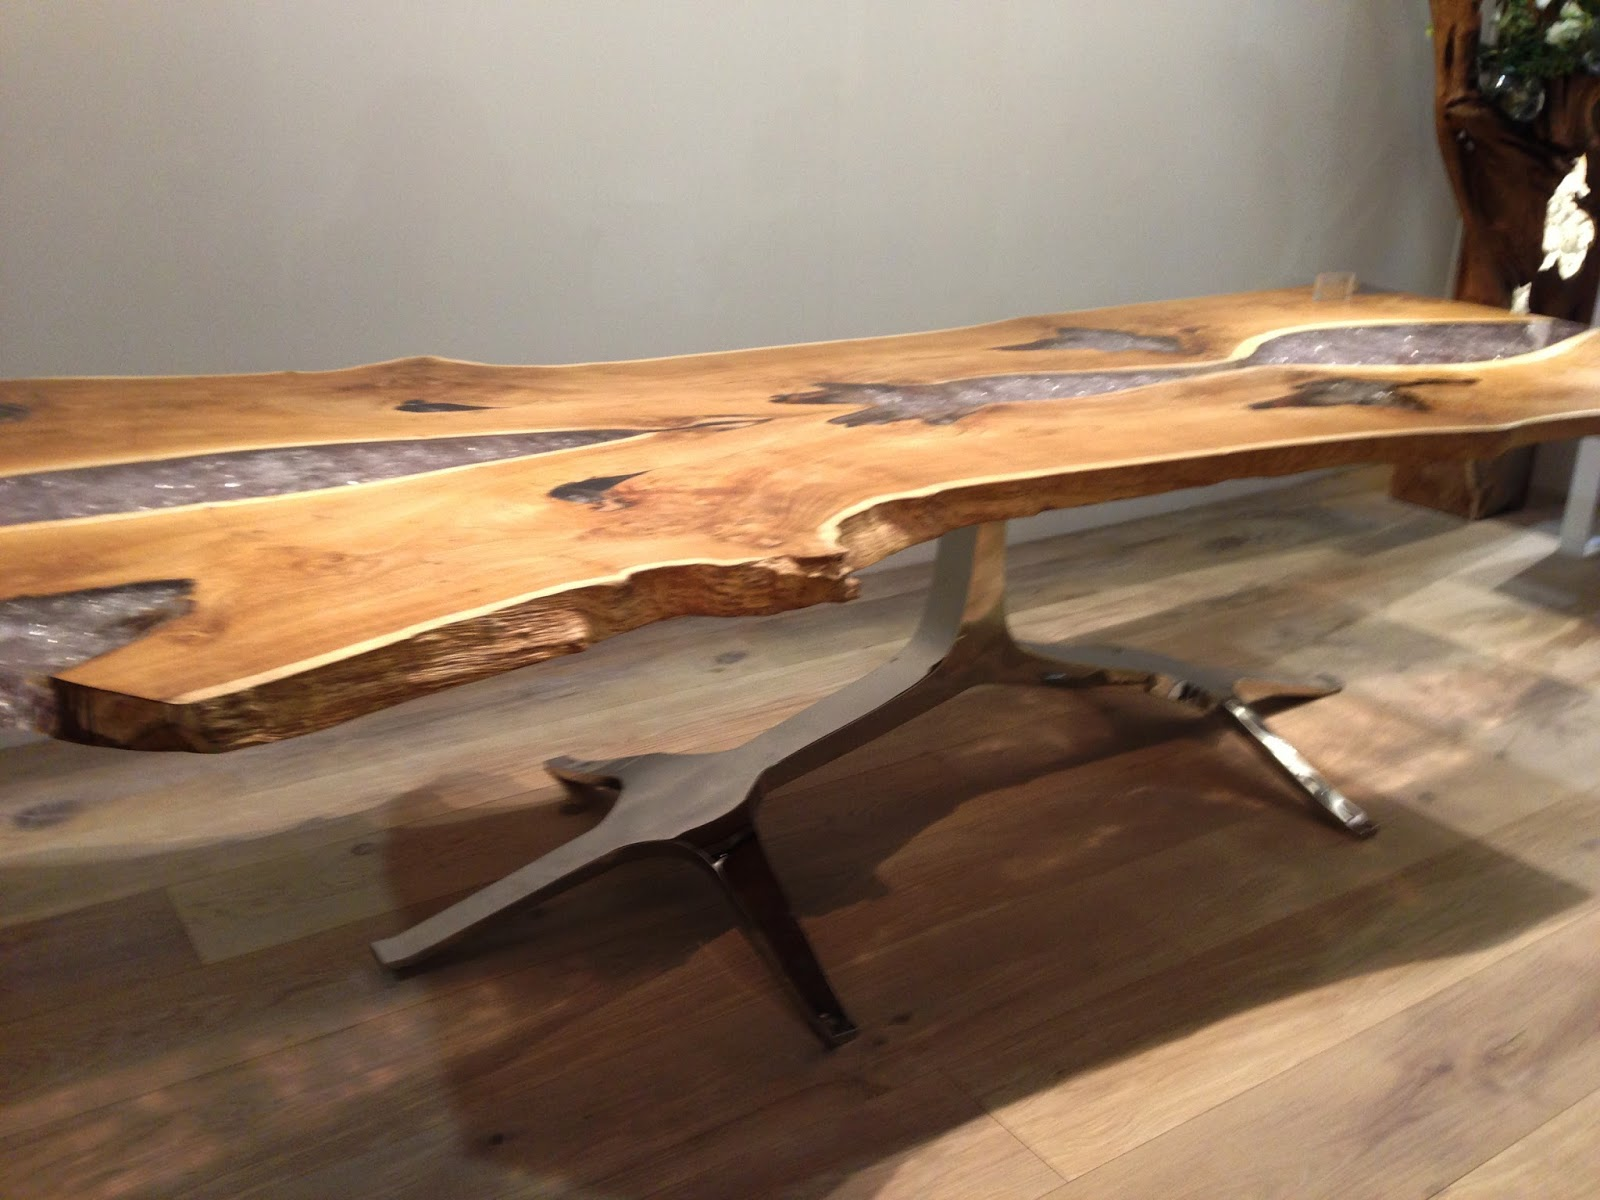 Sliced Log Coffee Table Table Desk Resin And Wood Thick Slab Chrome Steel Legs Modern Ebay